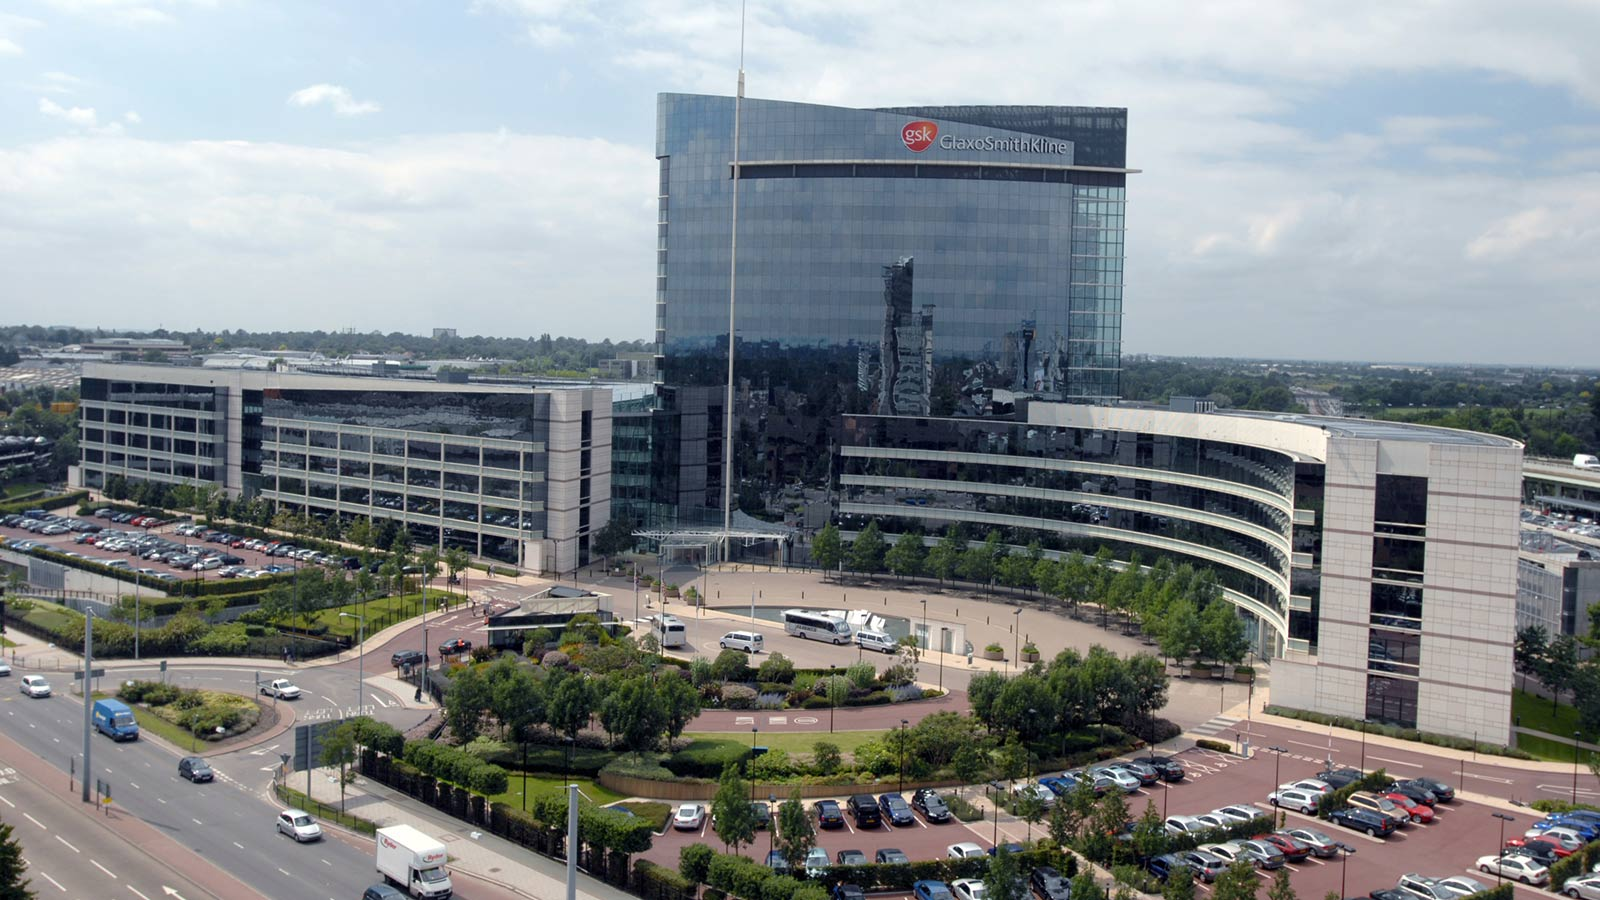 GlaxoSmithKline Forming a partnership to deliver world class